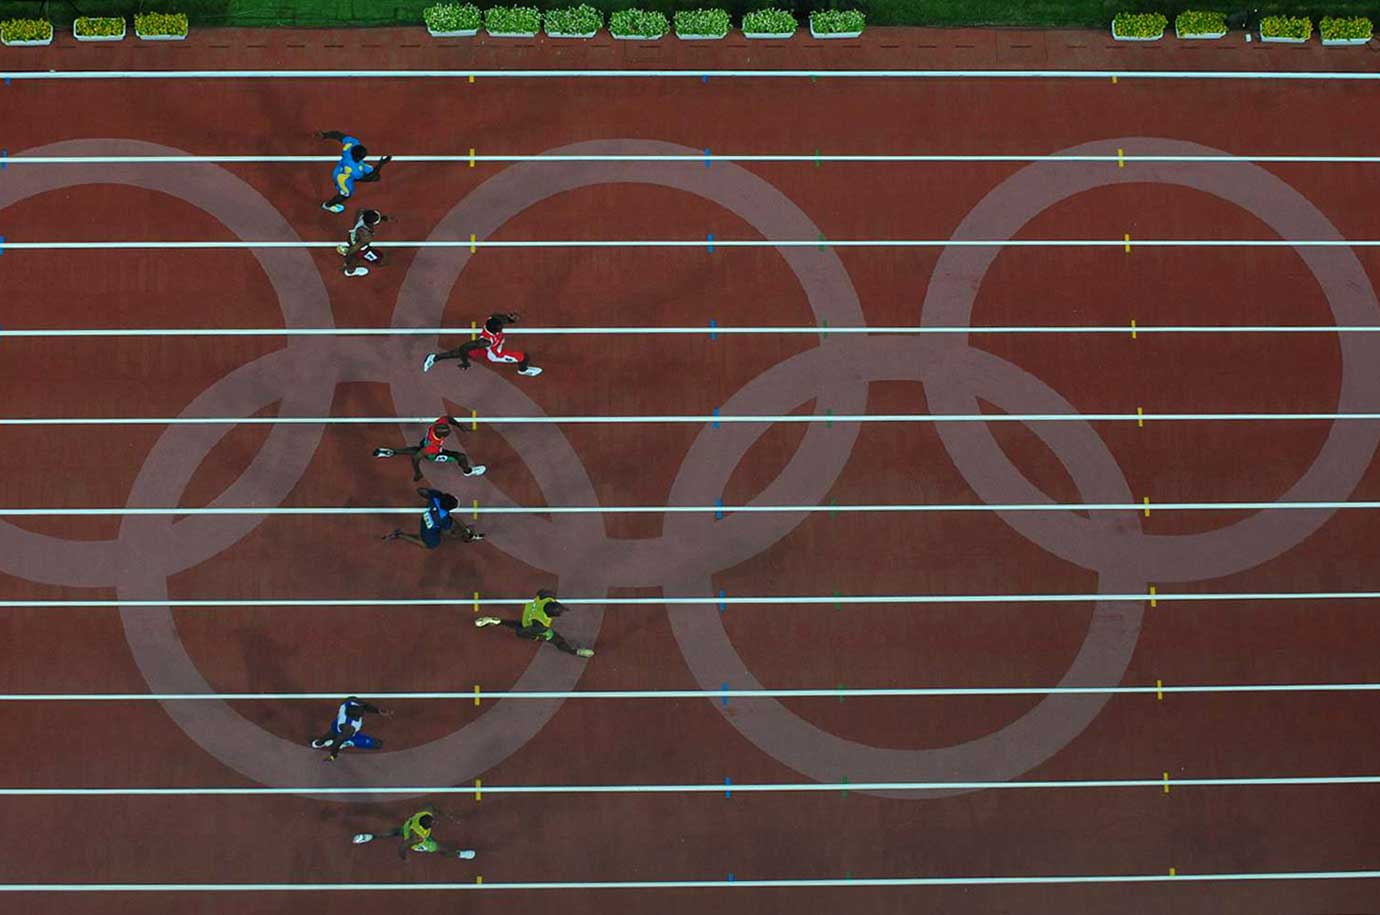 Usain Bolt of Jamaica leading the field in a 100-meter semifinal at the 2008 Beijing Olympic Games.